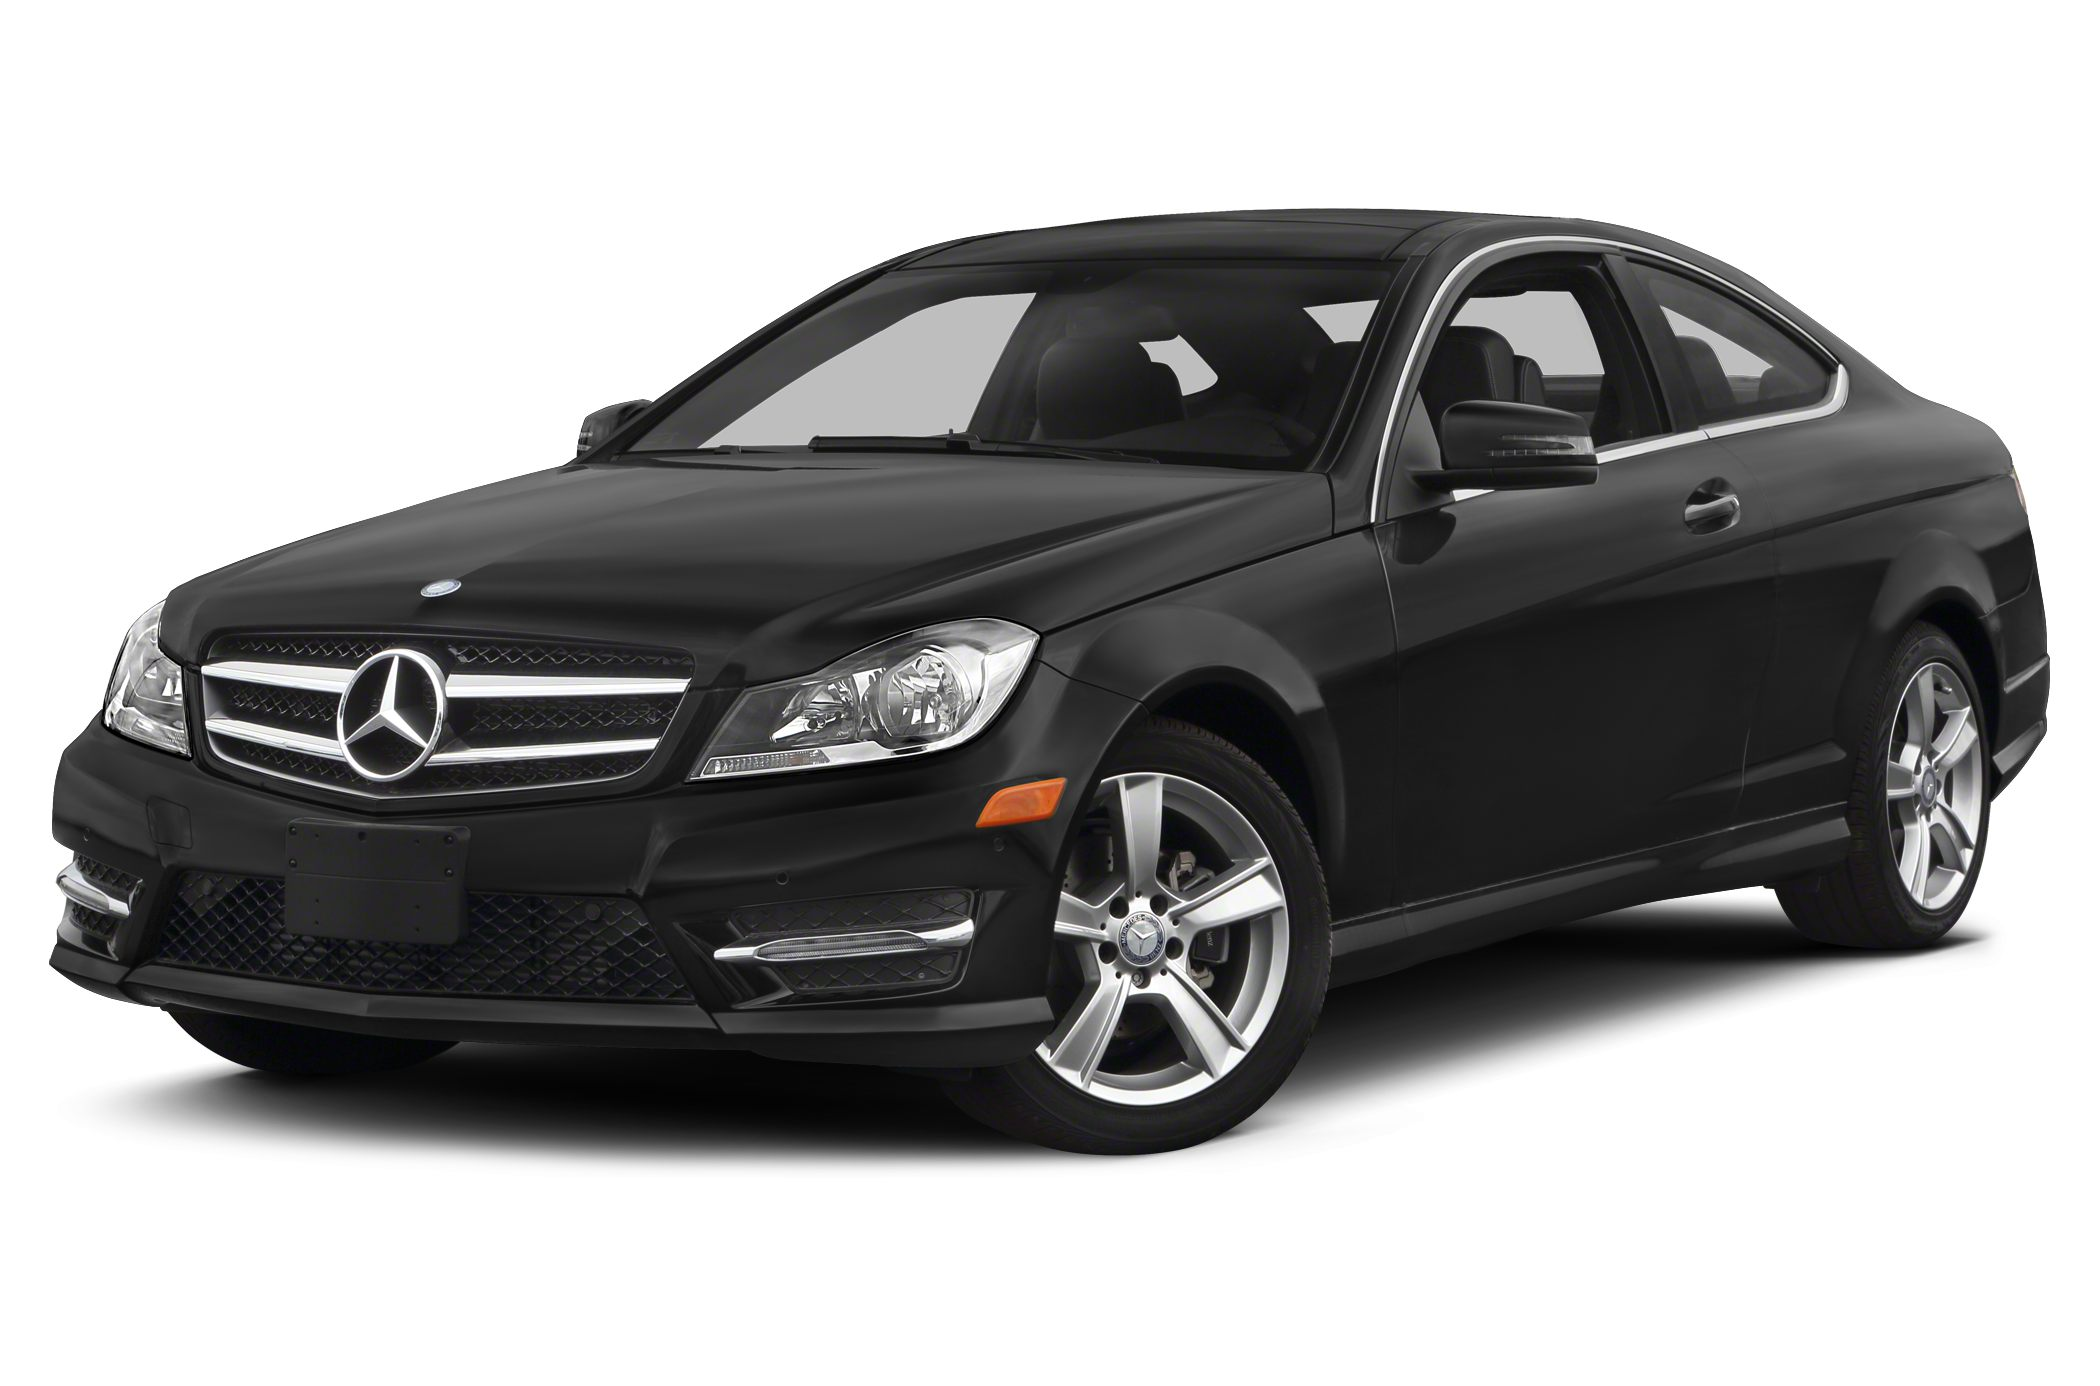 2014 Mercedes-Benz C-Class C250 Coupe for sale in Los Angeles for $41,020 with 8,210 miles